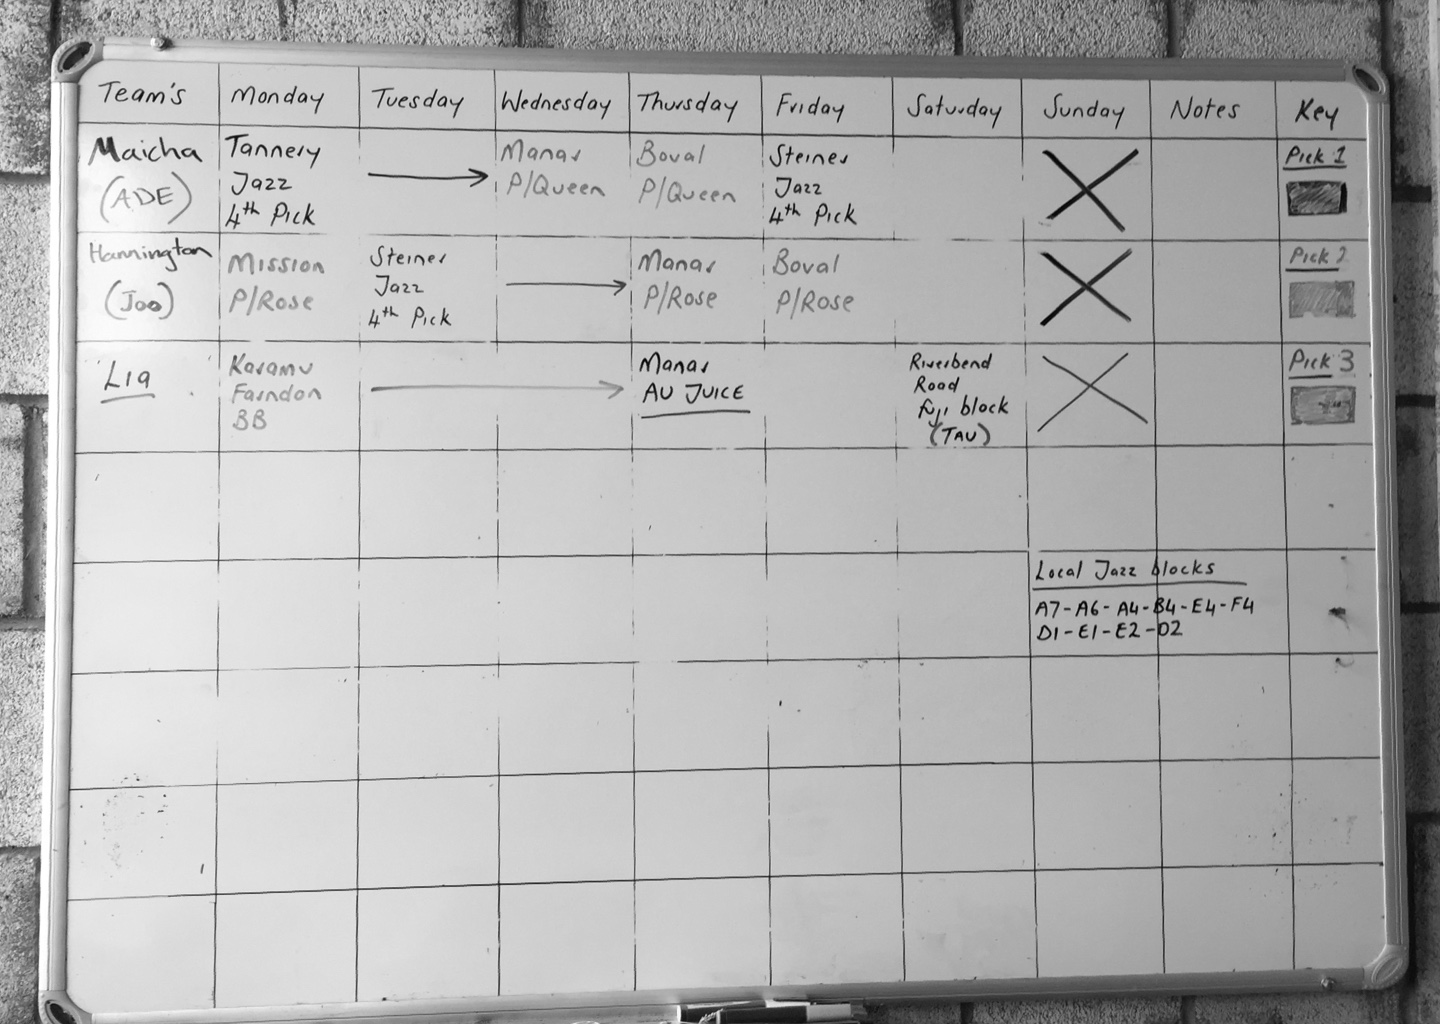 chart with names and days of the week with tasks